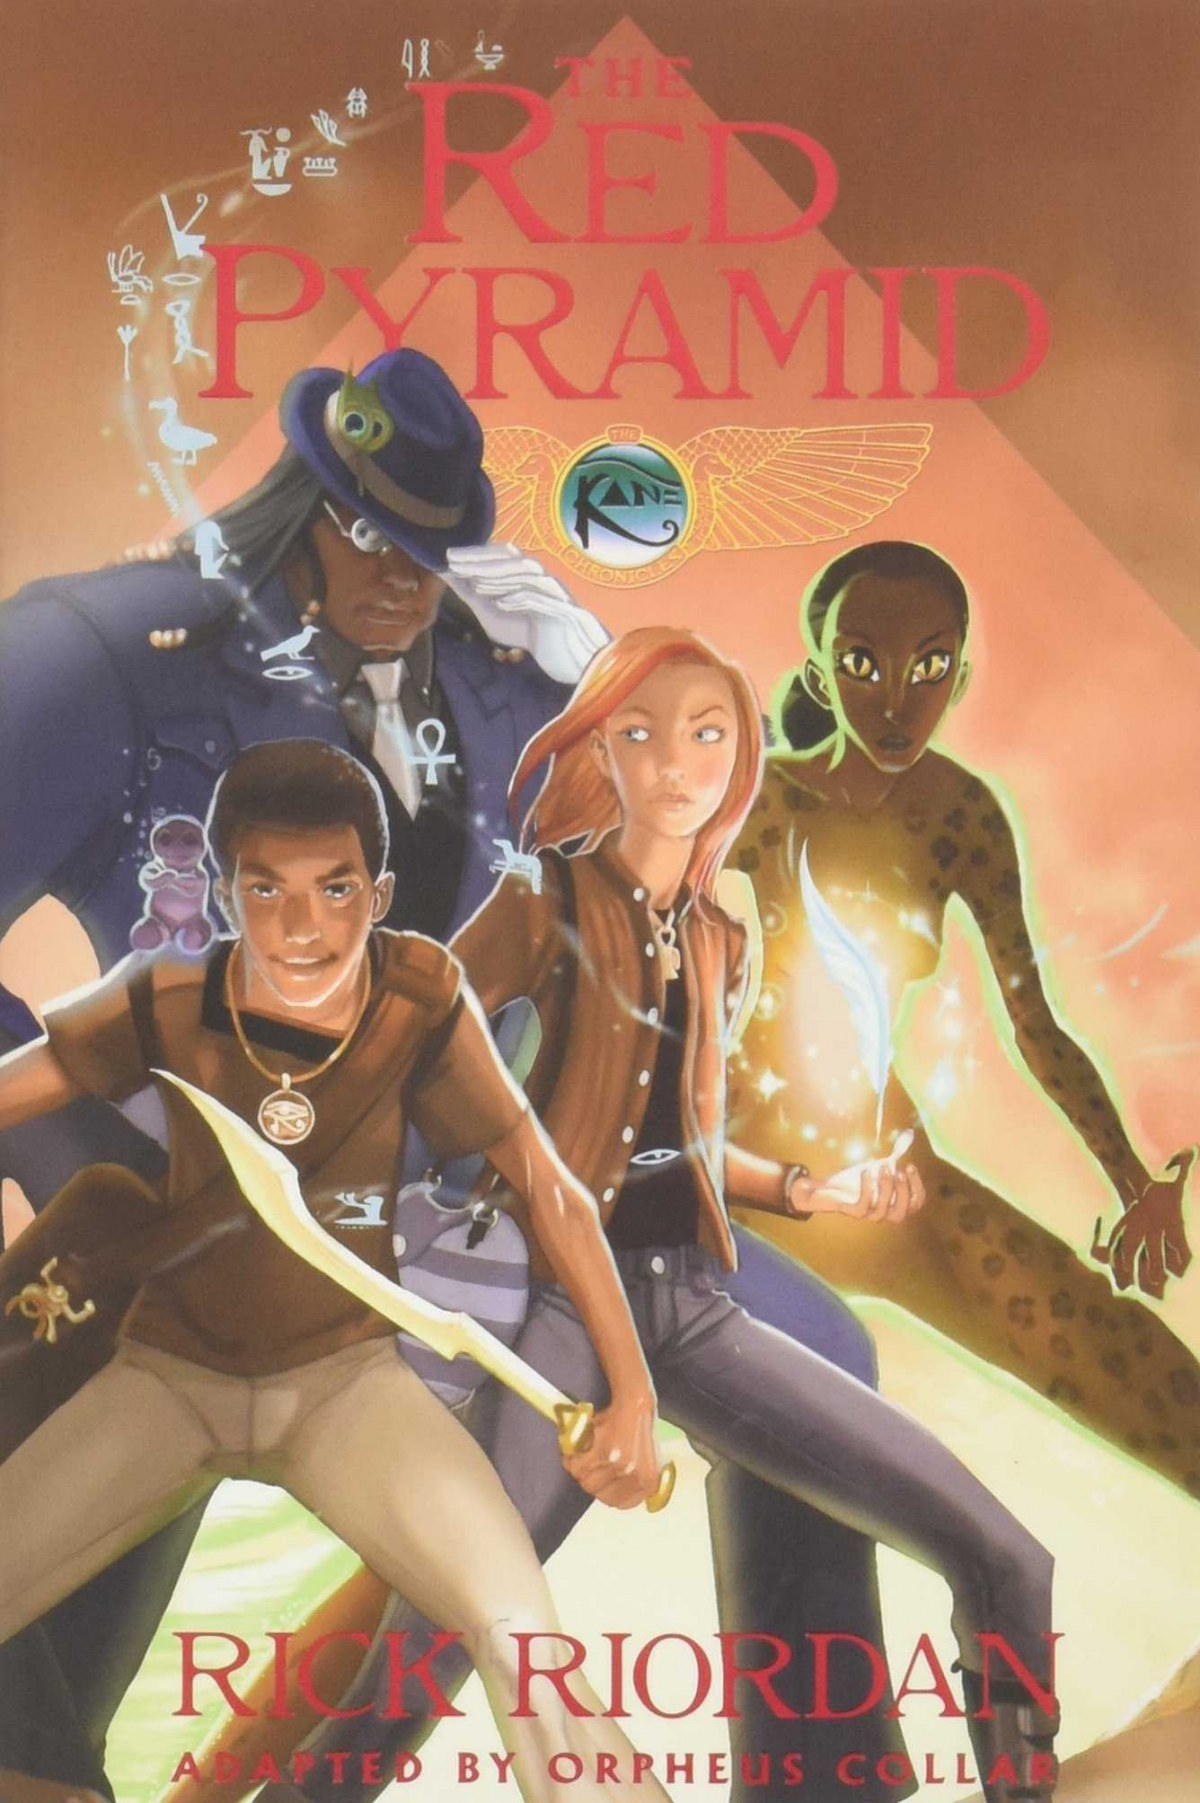 kane cronicles: red pyramid. Book one